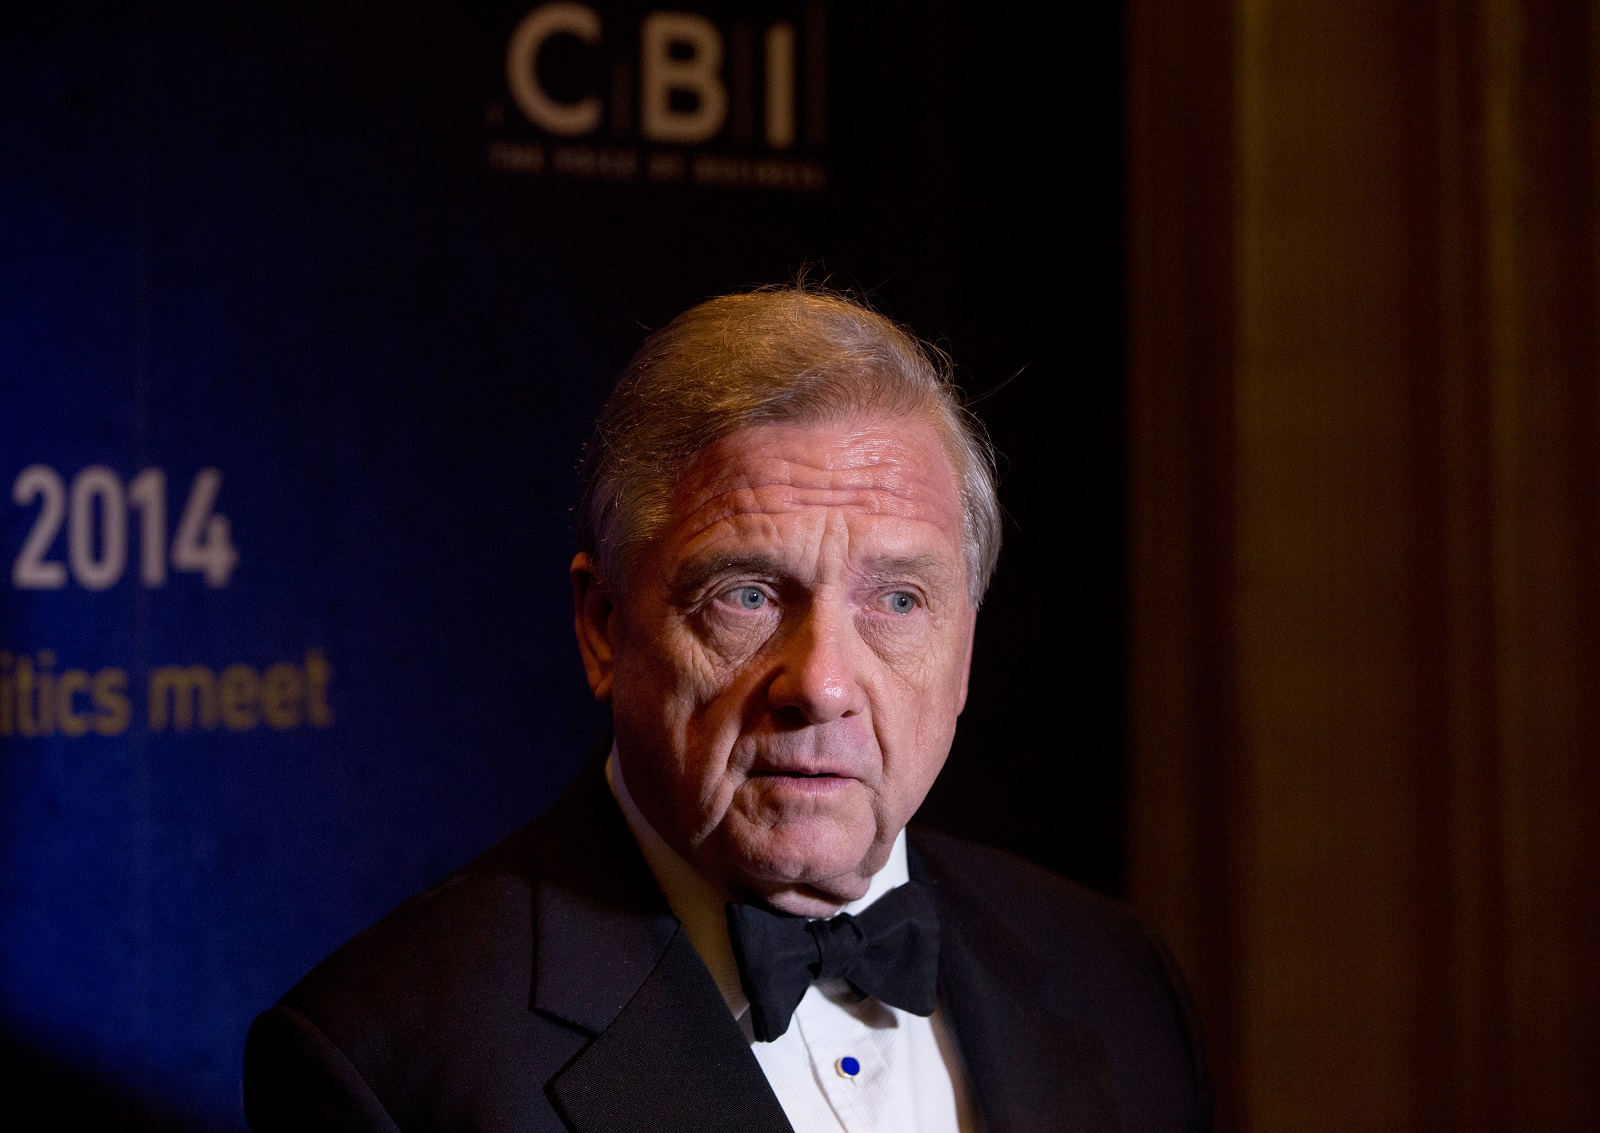 Sir Mike Rake of the CBI